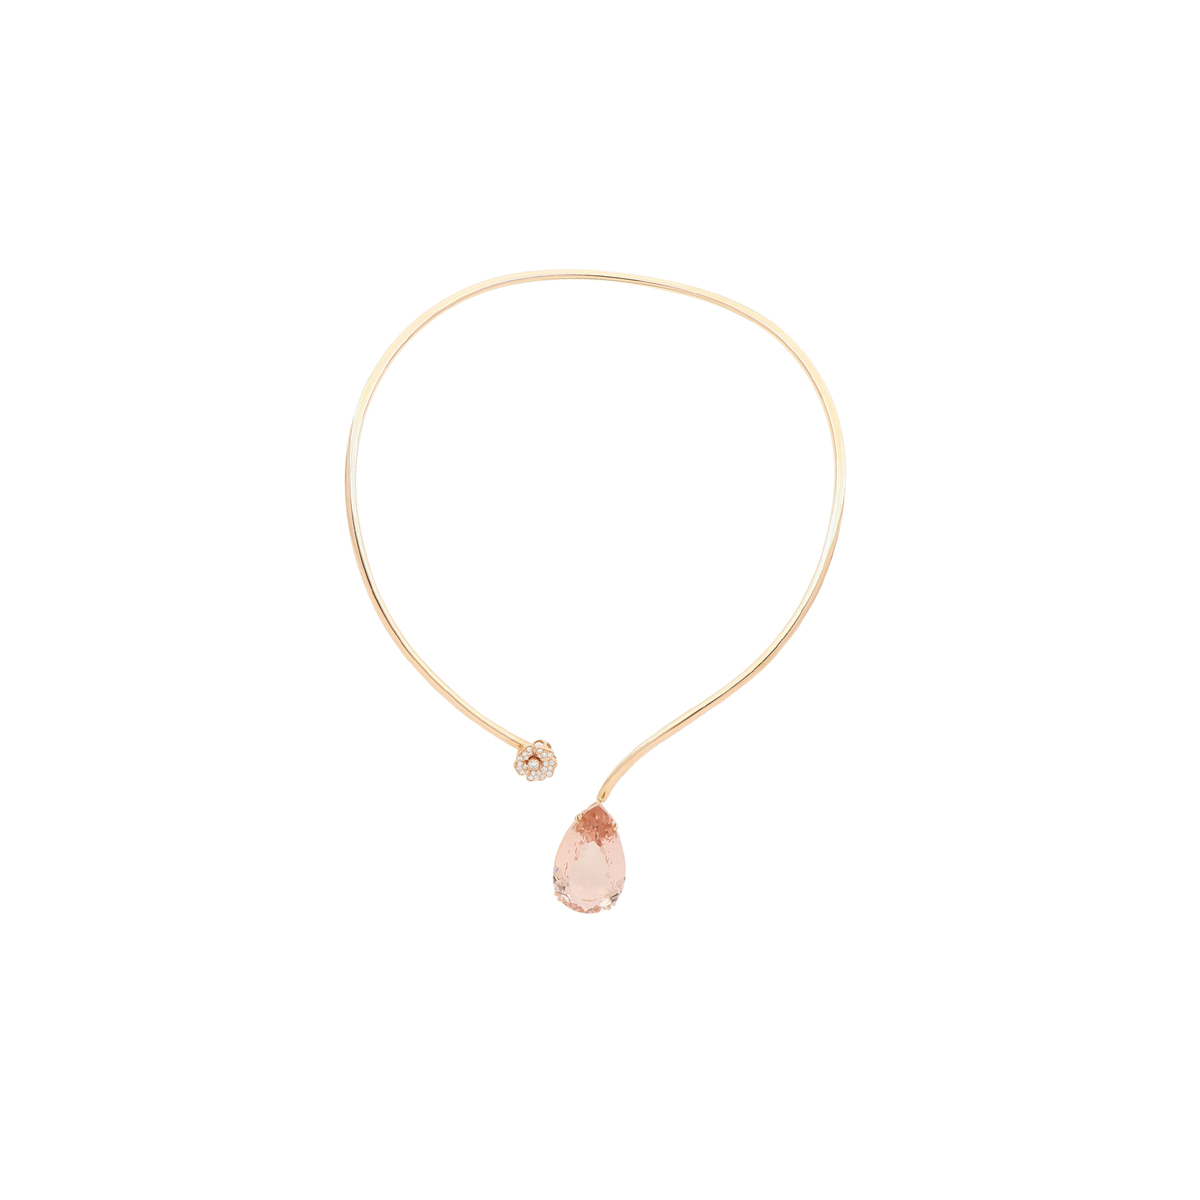 Open Collar Necklace with Morganite and Diamond Flower